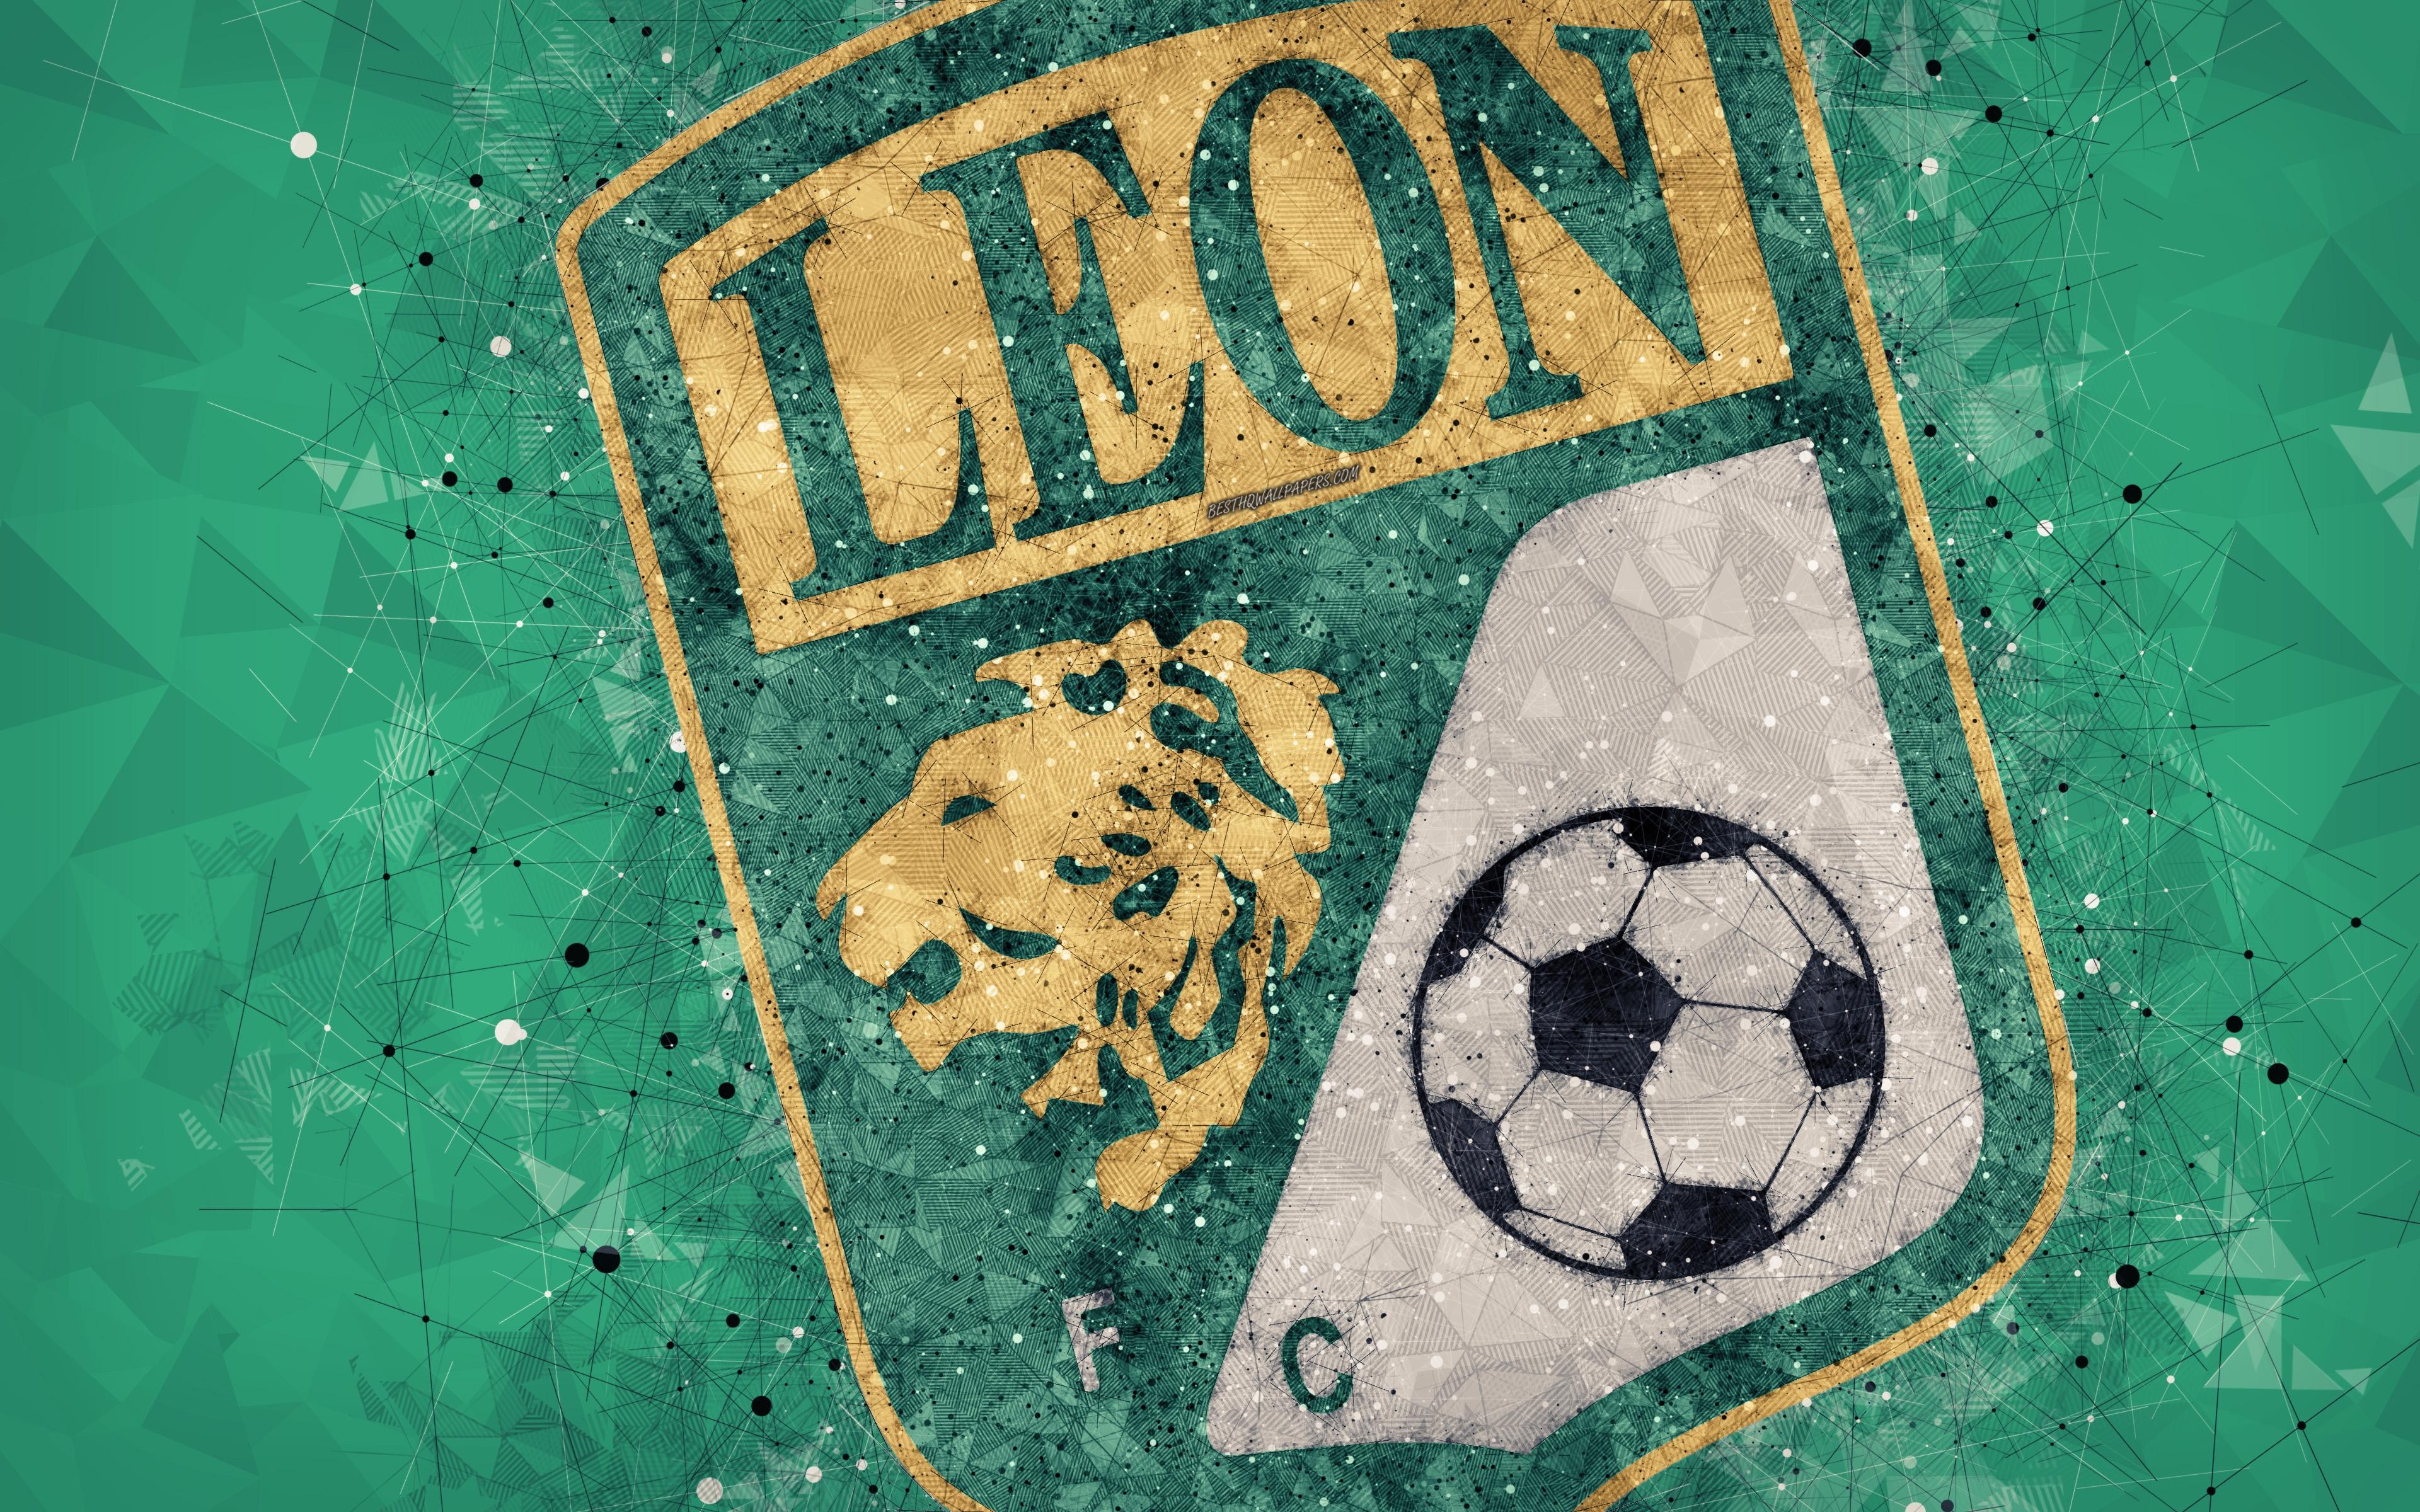 Download wallpapers Club Leon, 4k, geometric art, logo, Mexican ...